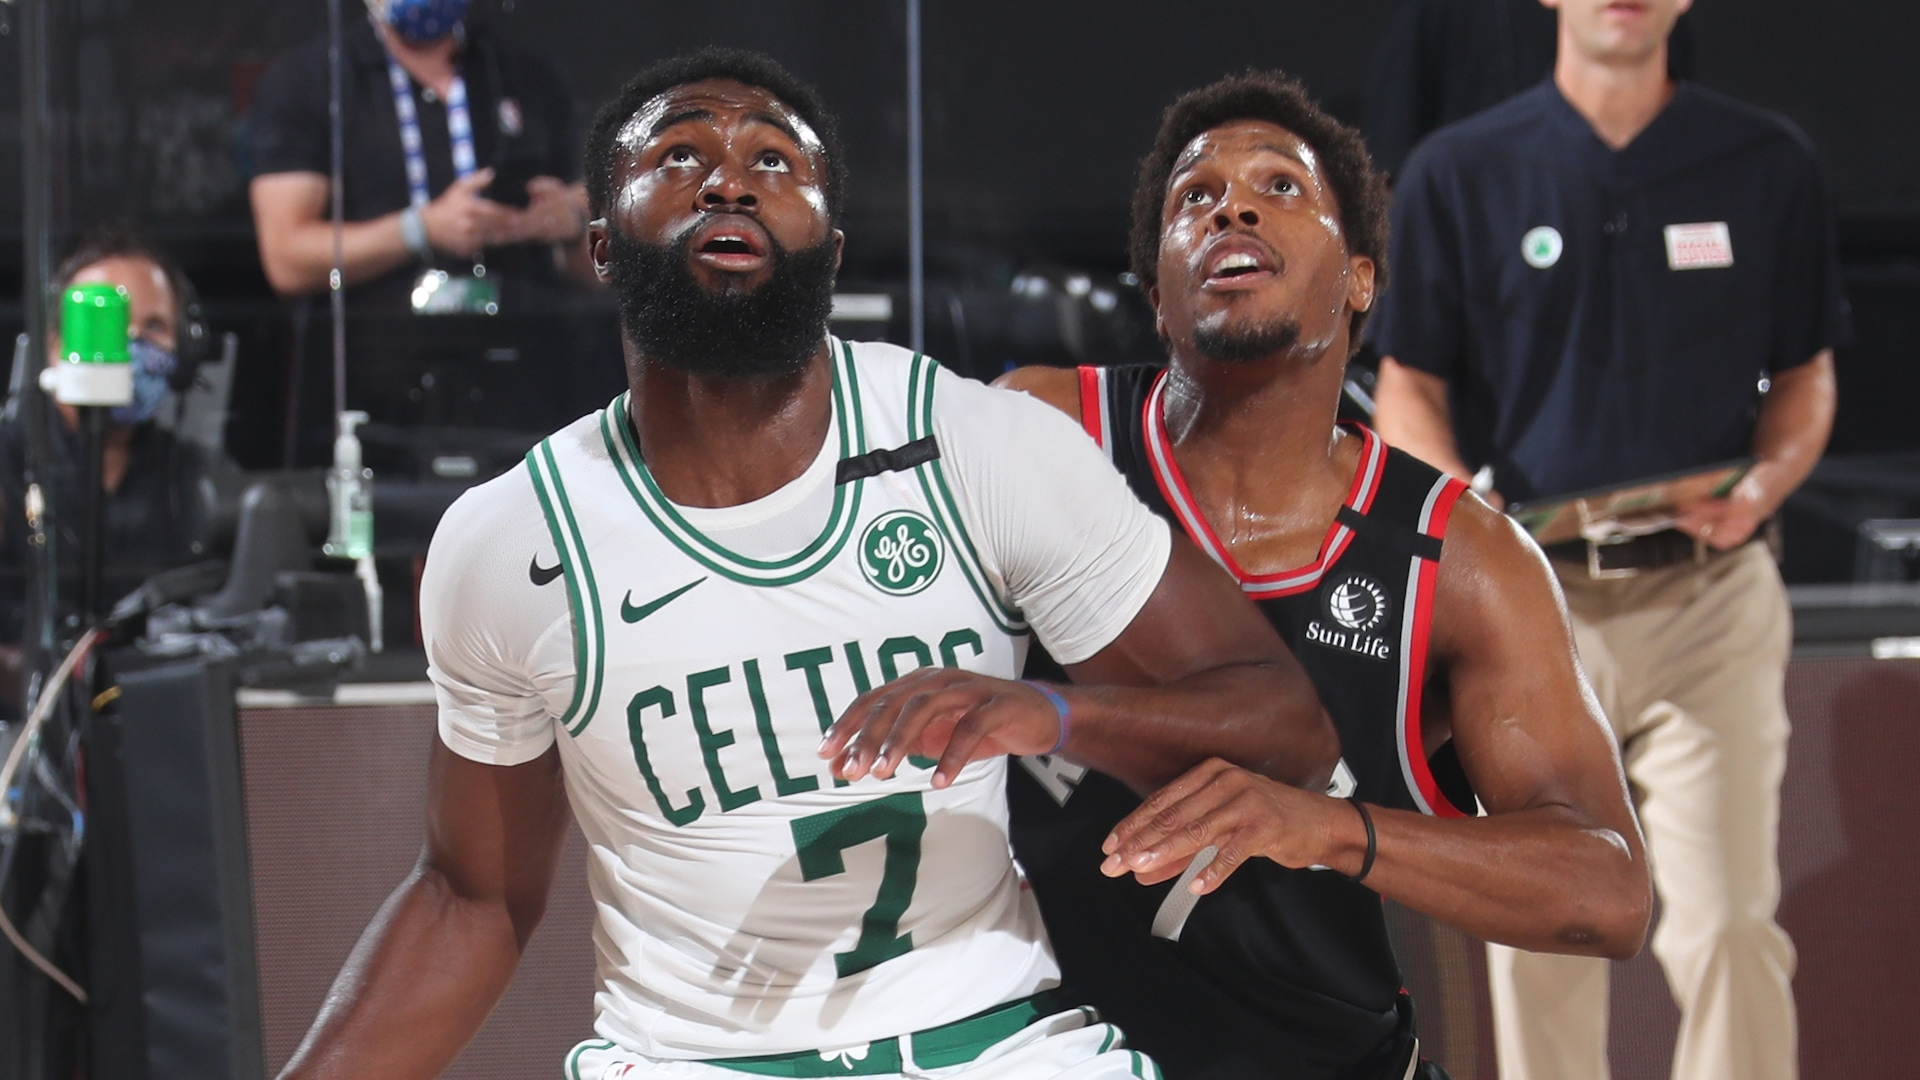 Four games in, Celtics and Raptors still searching for respective 'A' games